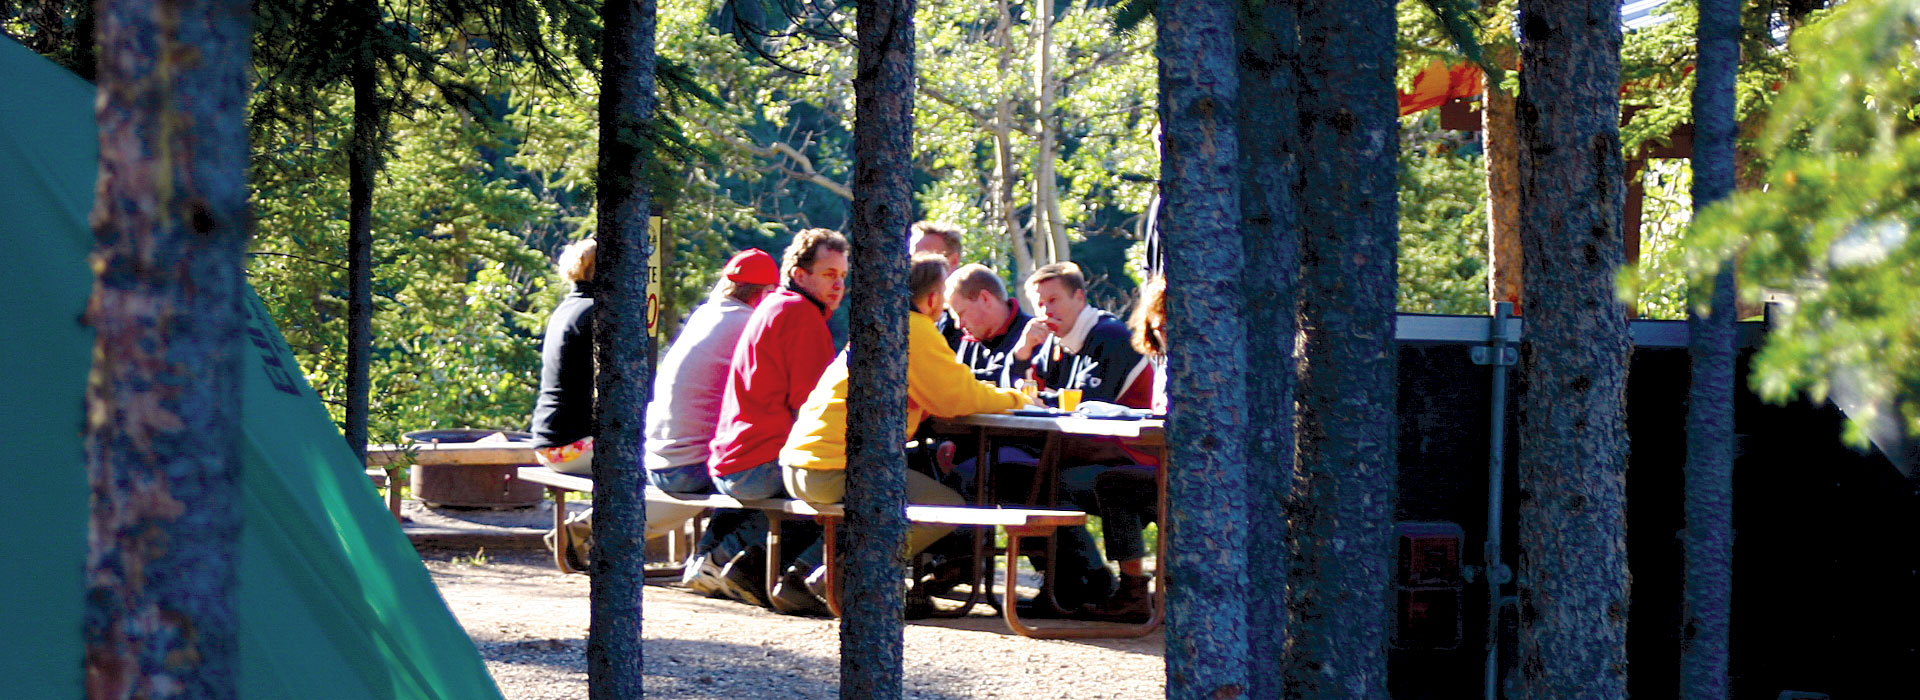 RV Campground & Tent Sites - Denali National Park Camping